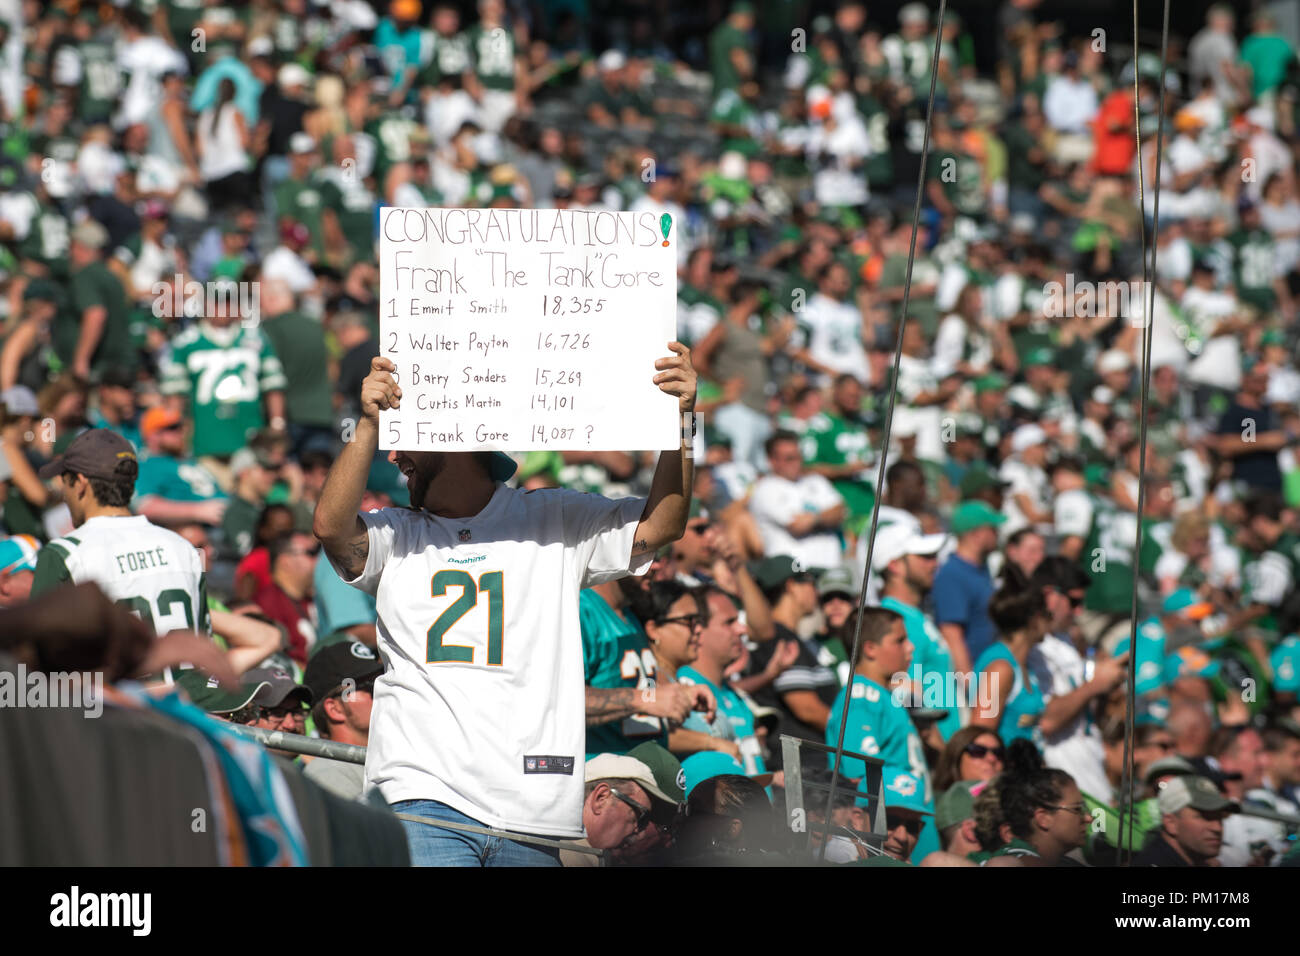 East Rutherford, NJ, USA. 16th Sep, 2018. A fan congratulates Miami Dolphins running back Frank Gore (21) (not pictured) for becoming 5th all time in rushing yards during the game between The New York Jets and The Miami Dolphins at Met Life Stadium in East Rutherford, NJ. The Miami Dolphins defeat The New York Jets 20-12. Mandatory Credit: Kostas Lymperopoulos/CSM/Alamy Live News - Stock Image